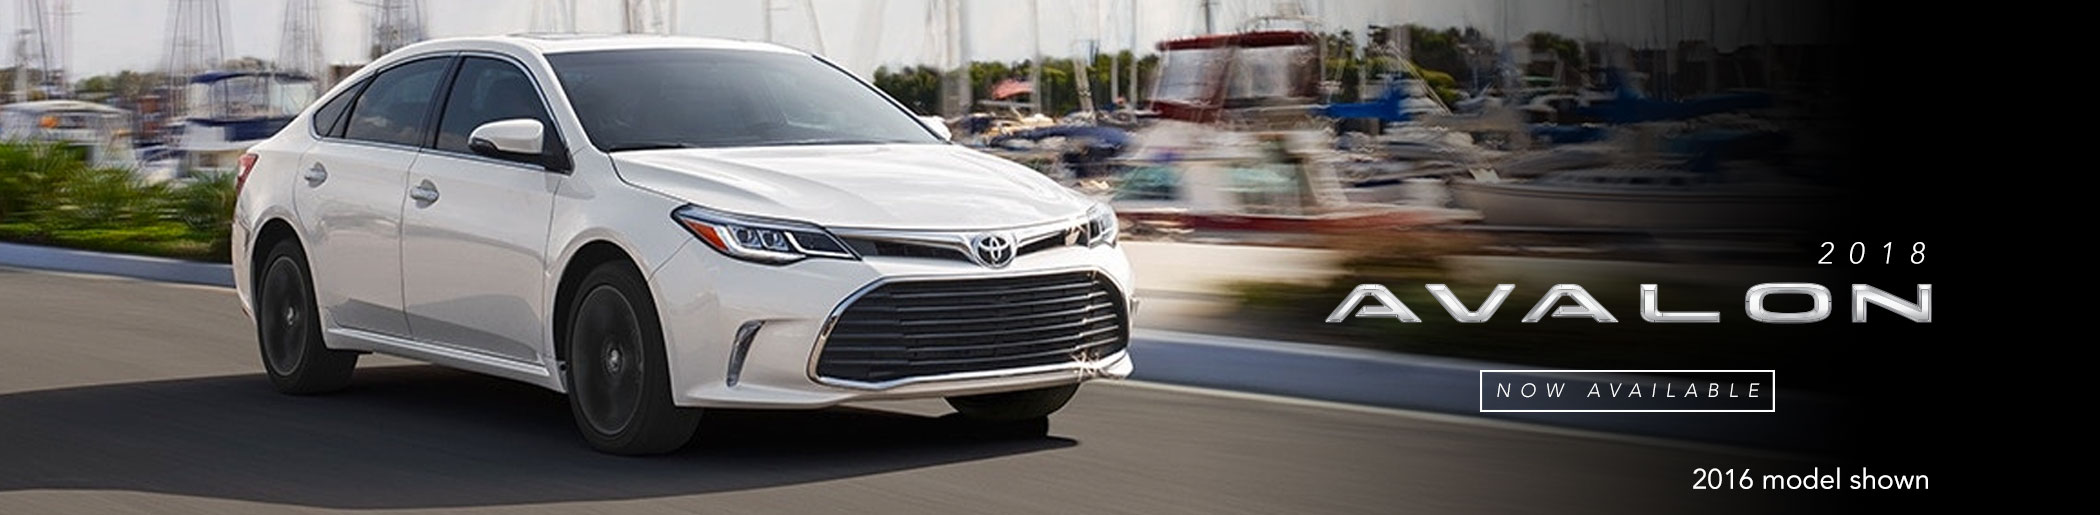 2018 Toyota Avalon | The New 2018 Avalon At Toyota of Greenville